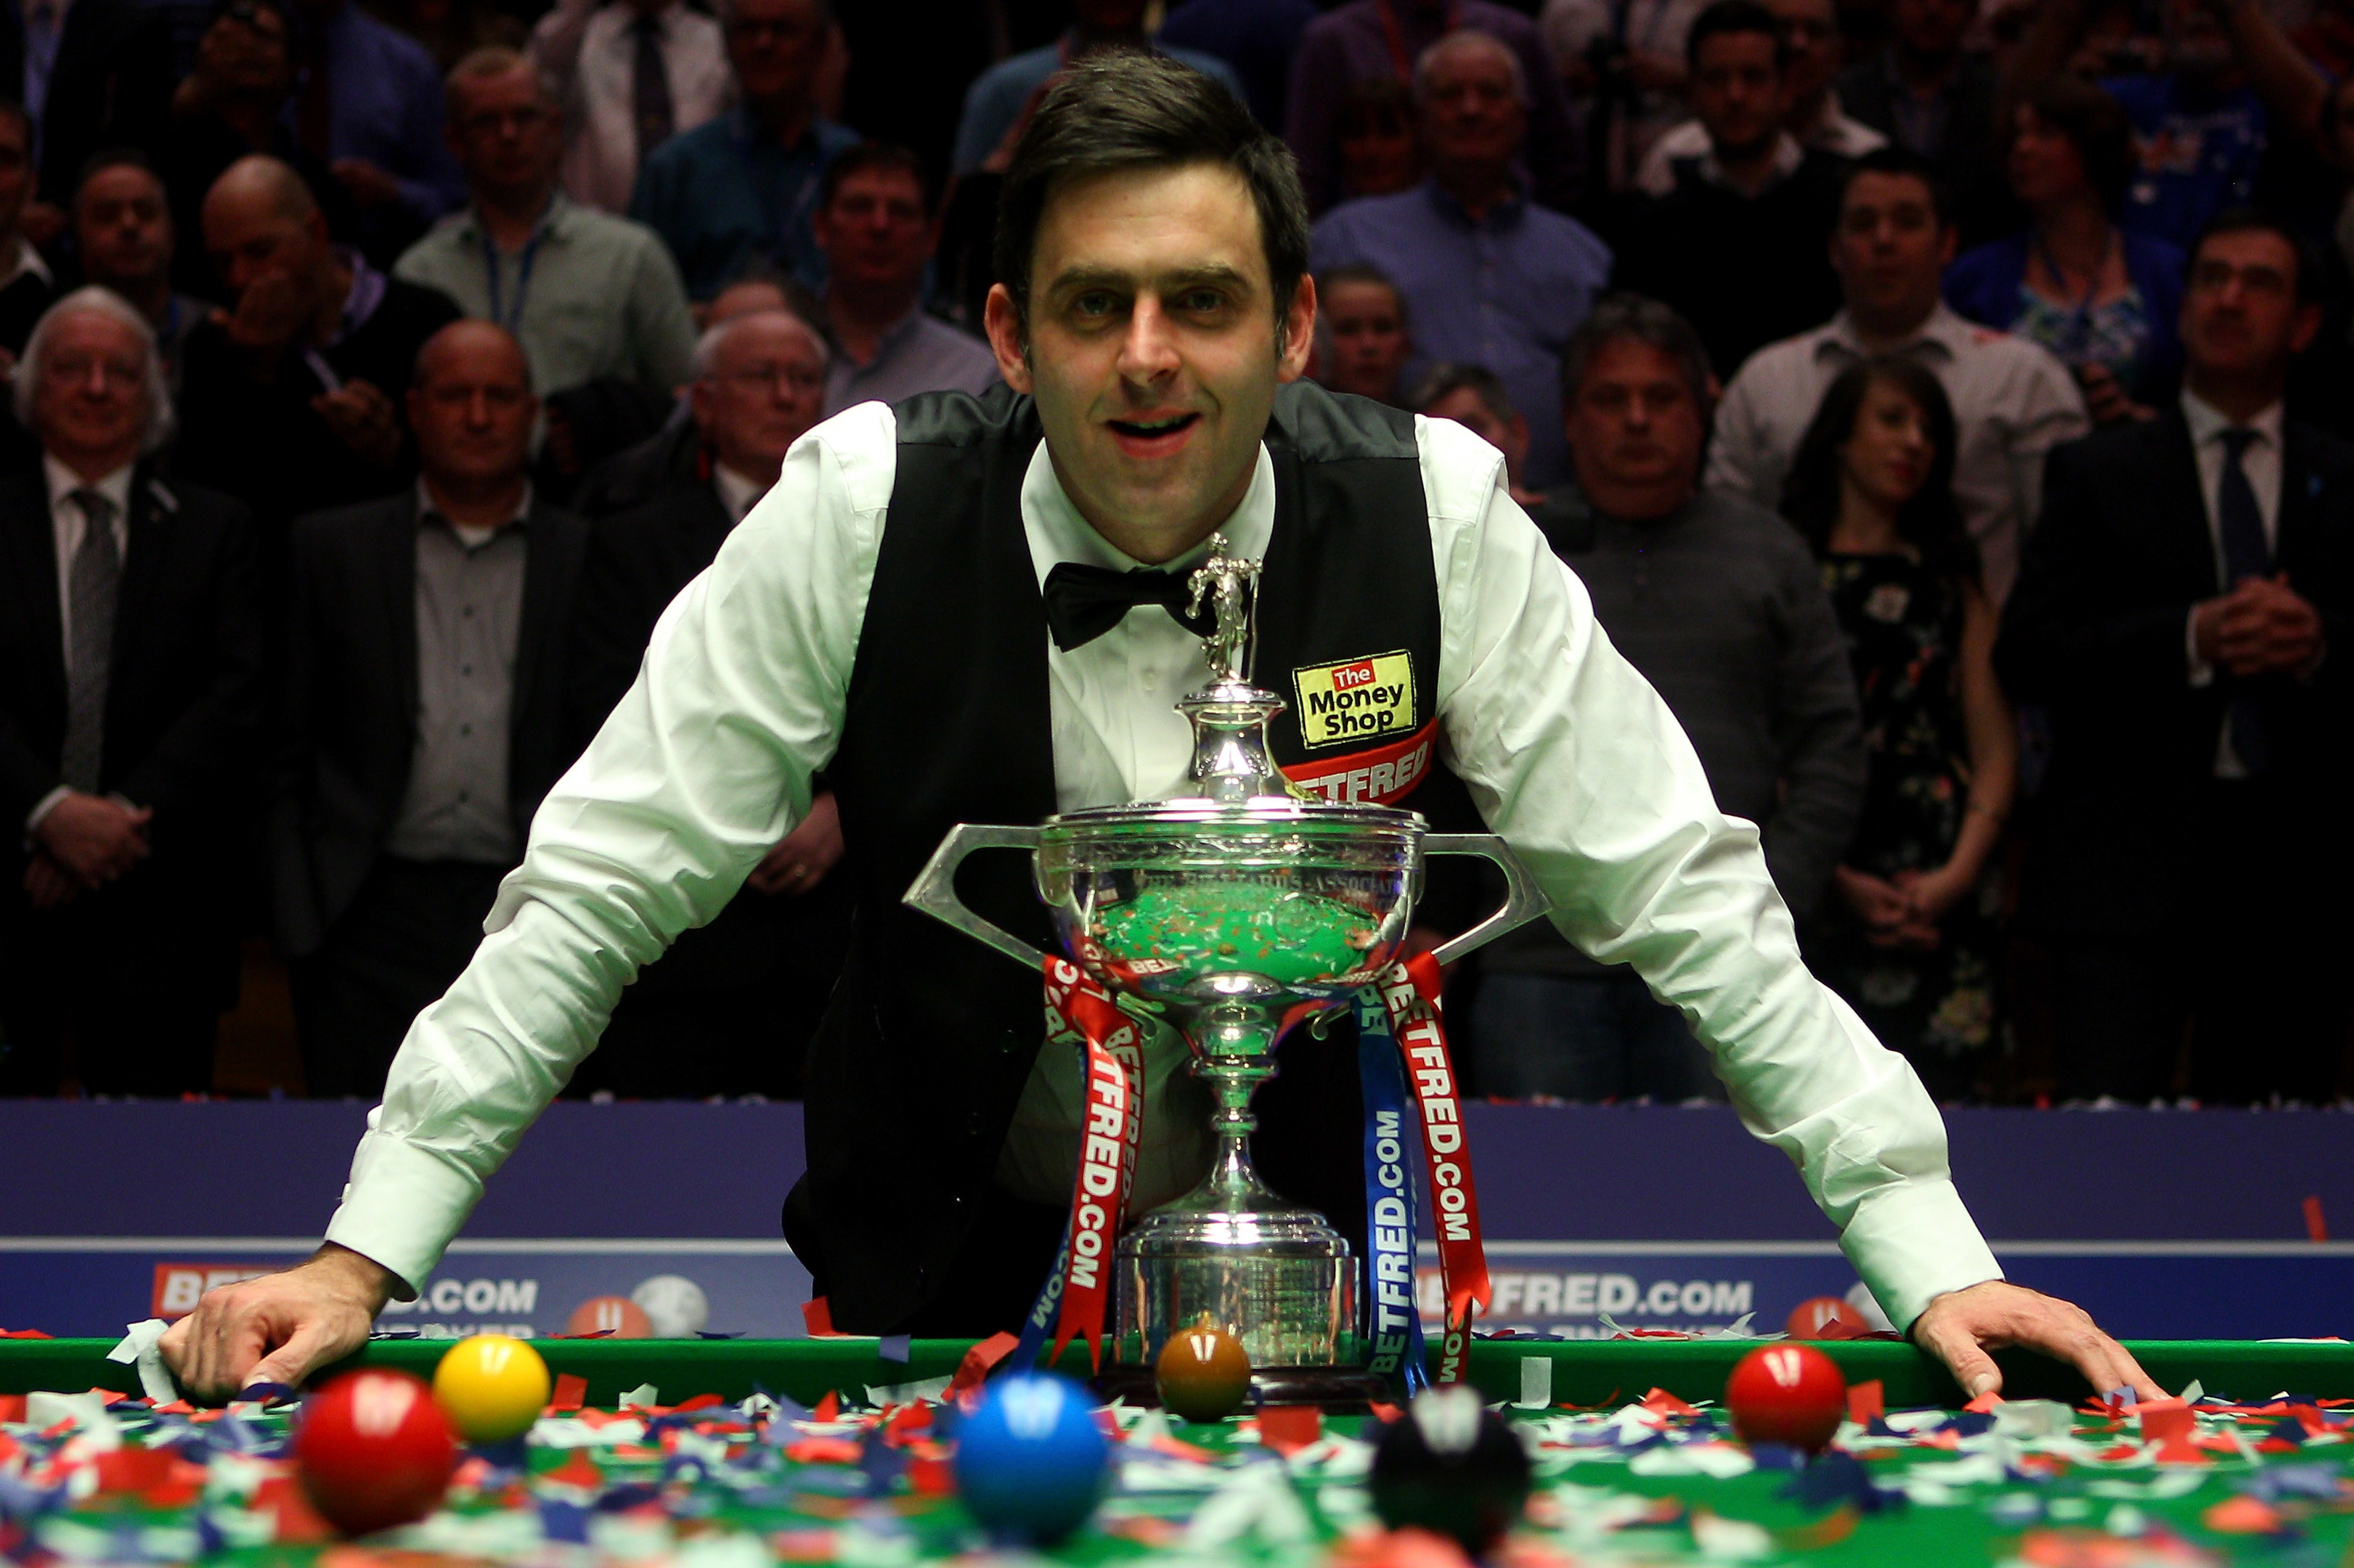 Ronnie O'Sullivan of England poses with the trophy after beating Allister Carter of England in the final of the Betfred.com World Snooker Championship, 2012 (Photo by Warren Little/Getty Images)